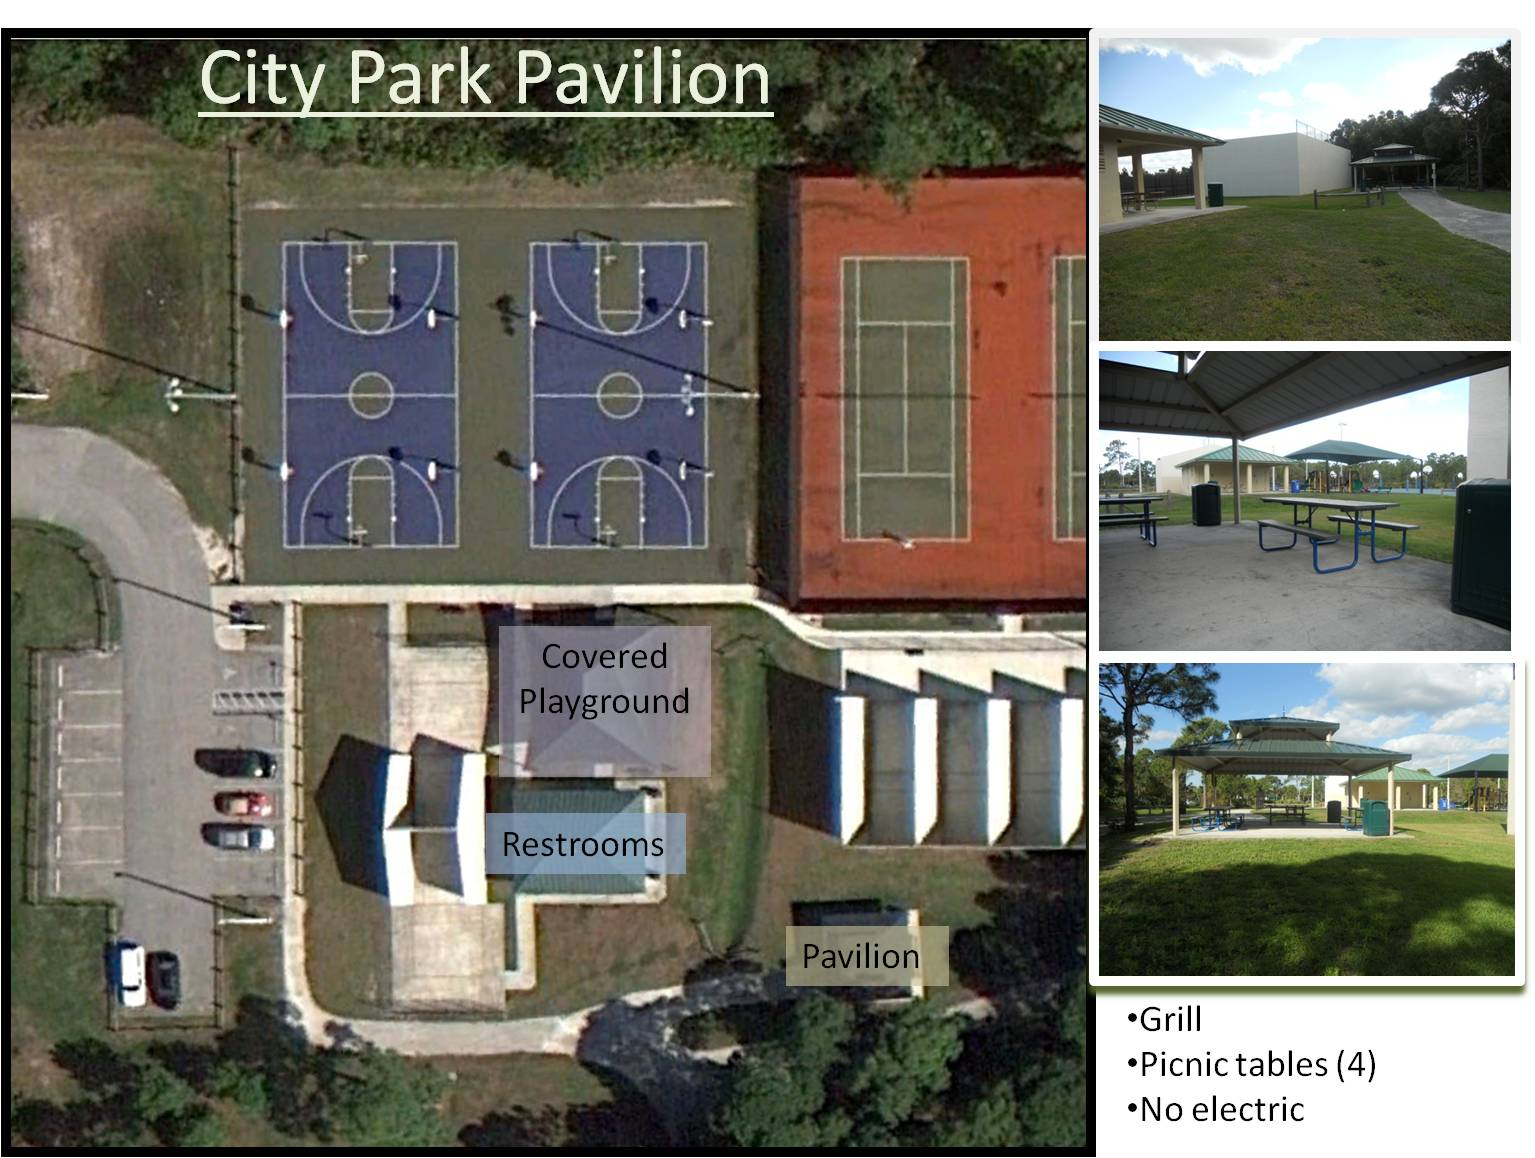 Arial map of the city park pavilion